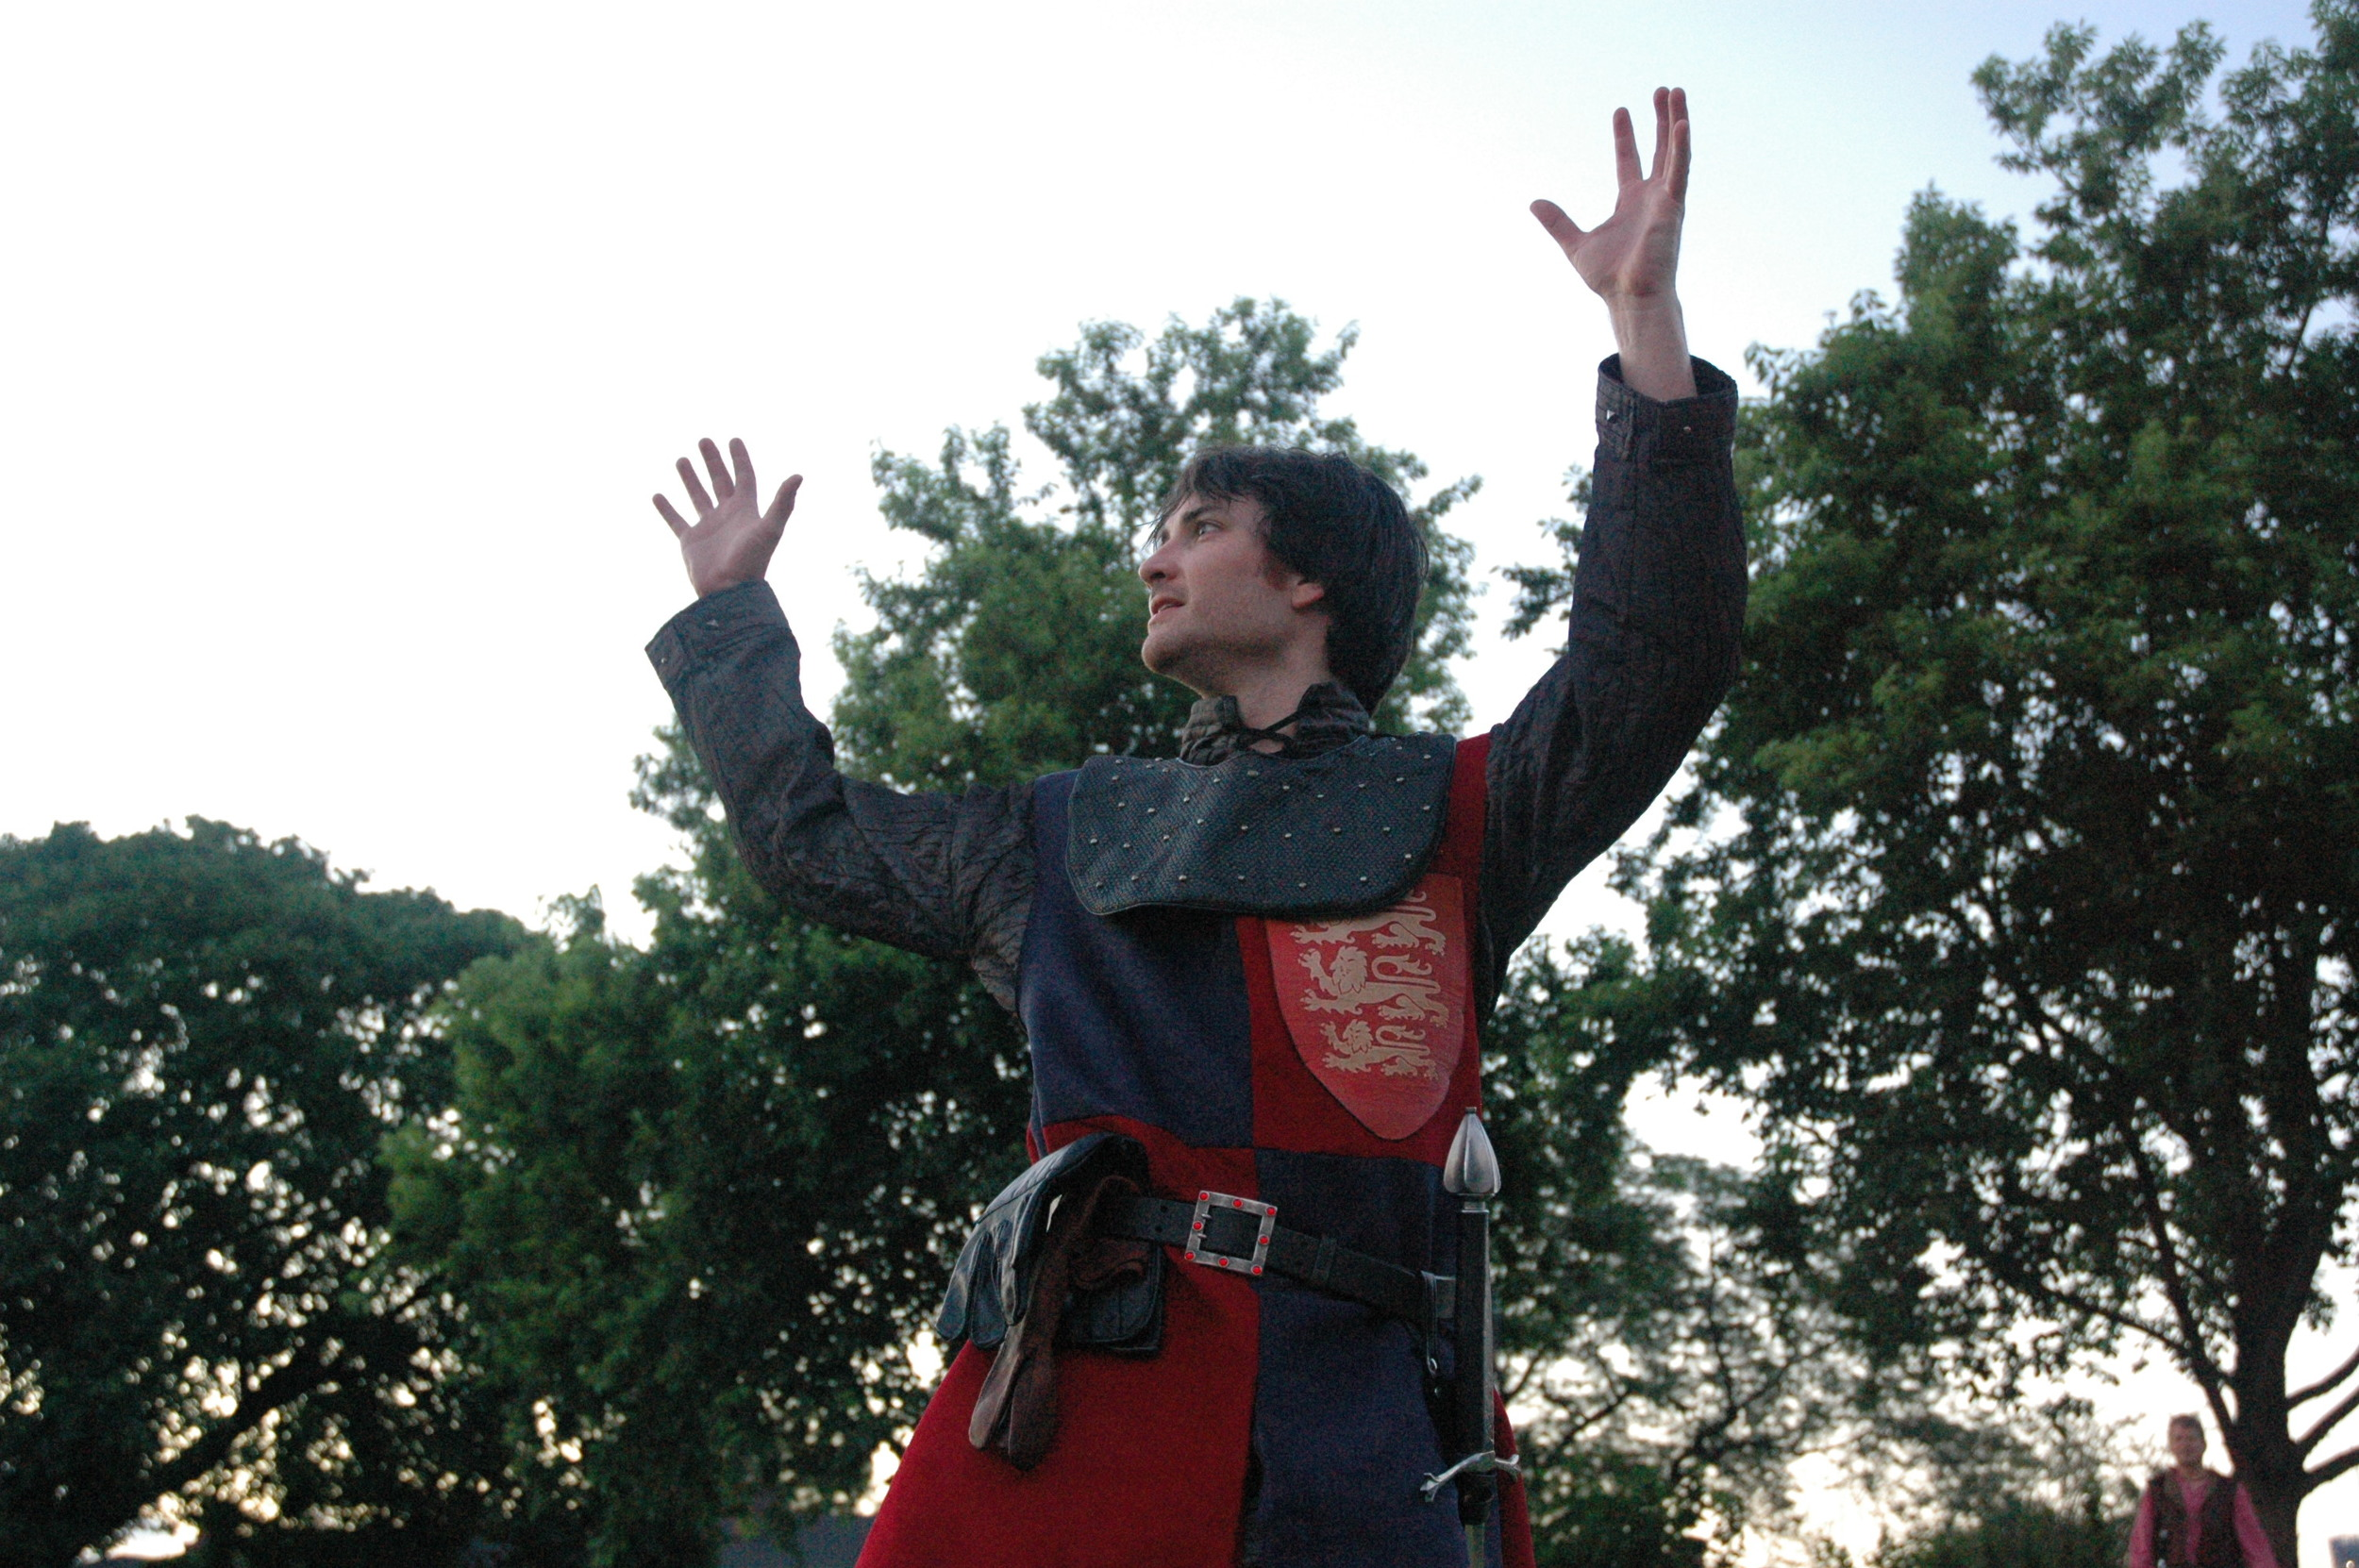 New York Classical Theatre free Shakespeare in the park Henry V